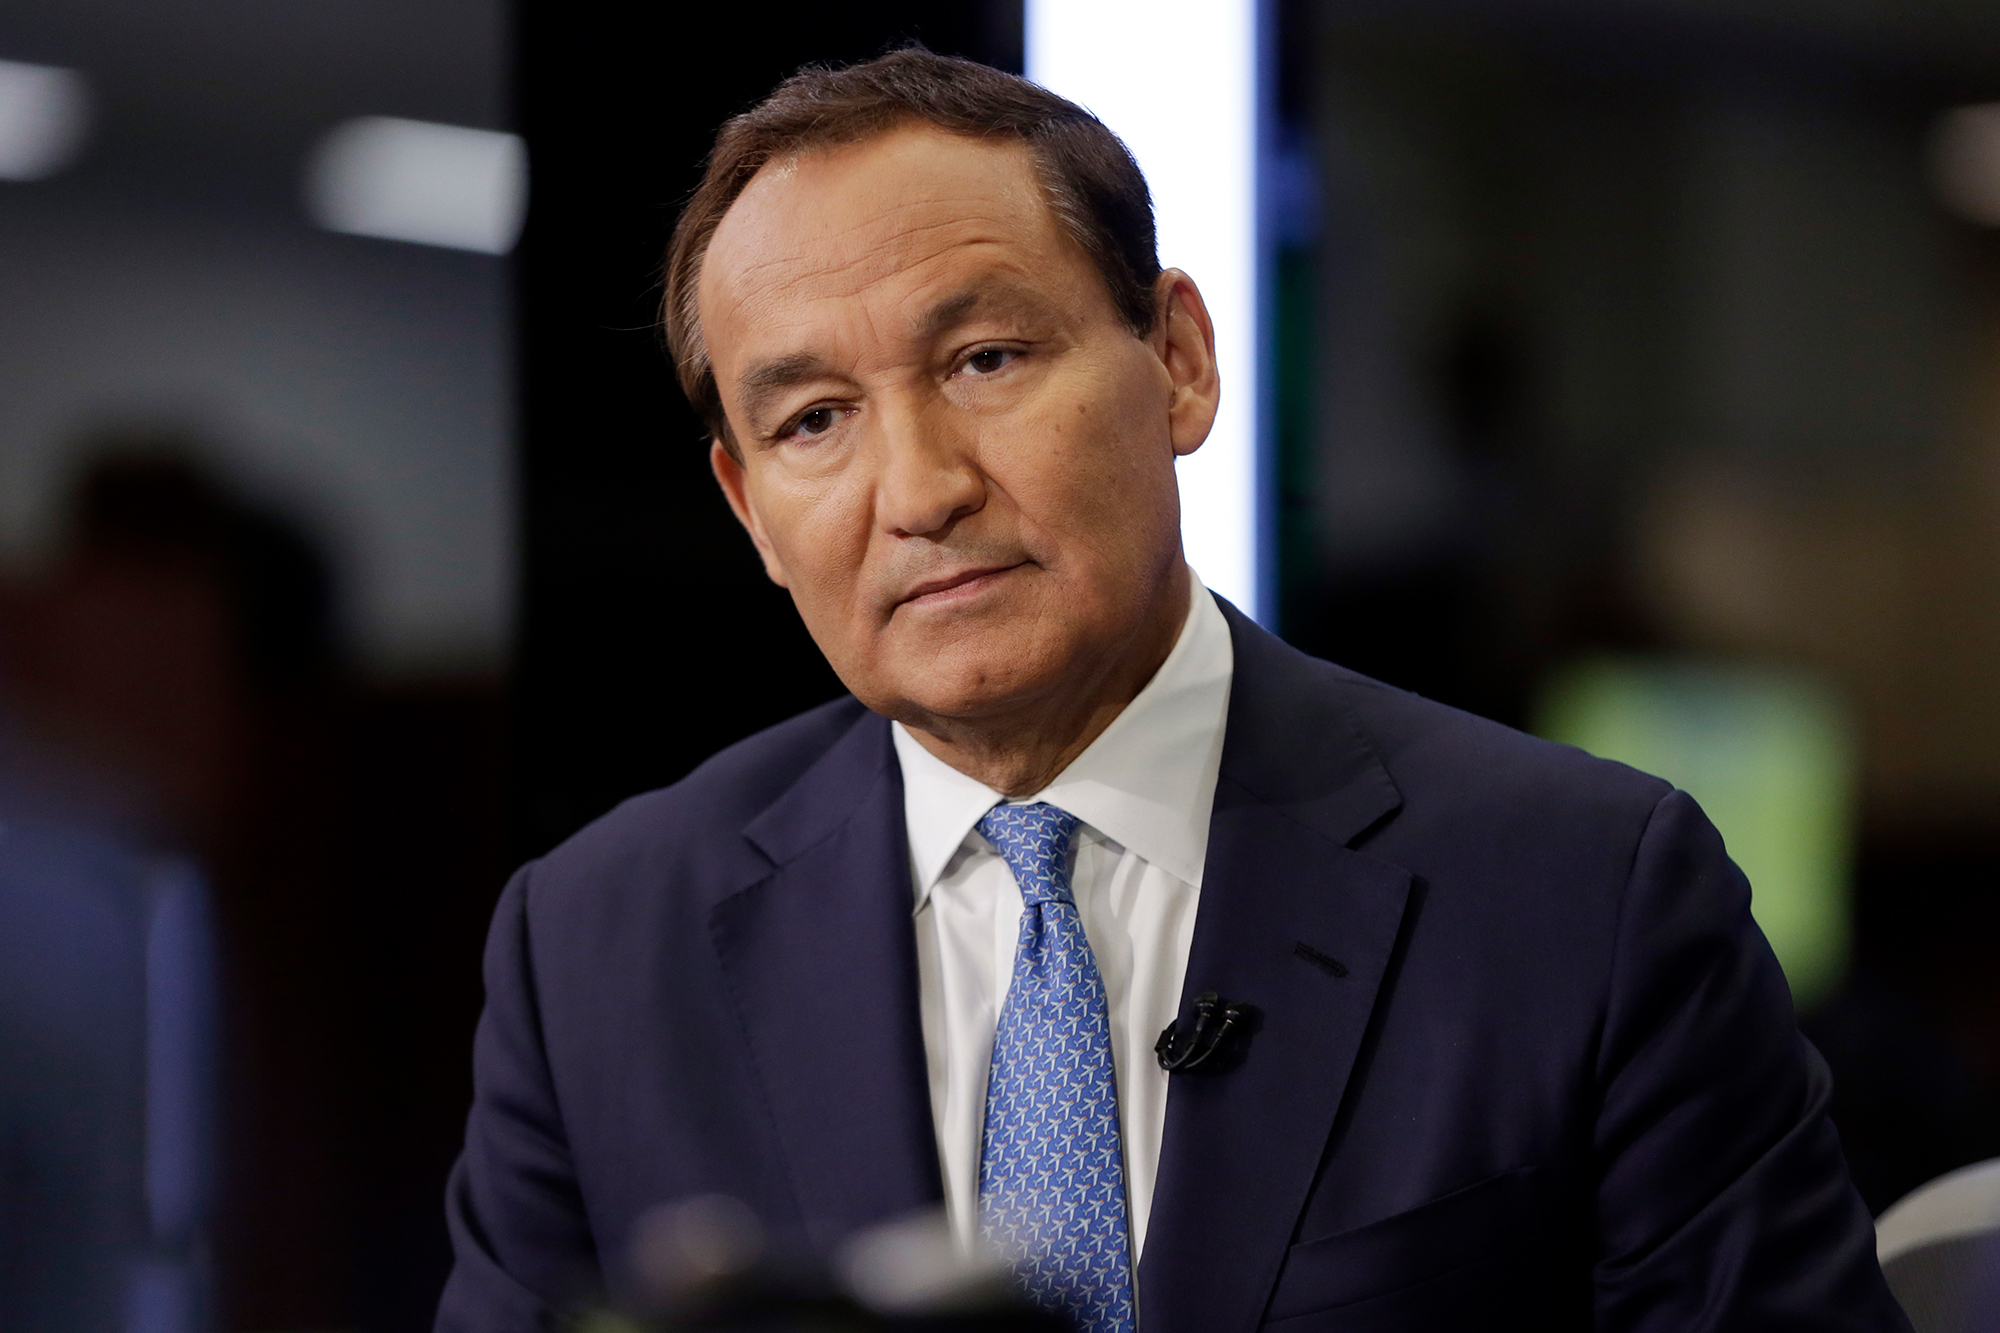 United Airlines CEO Oscar Munoz is stepping down